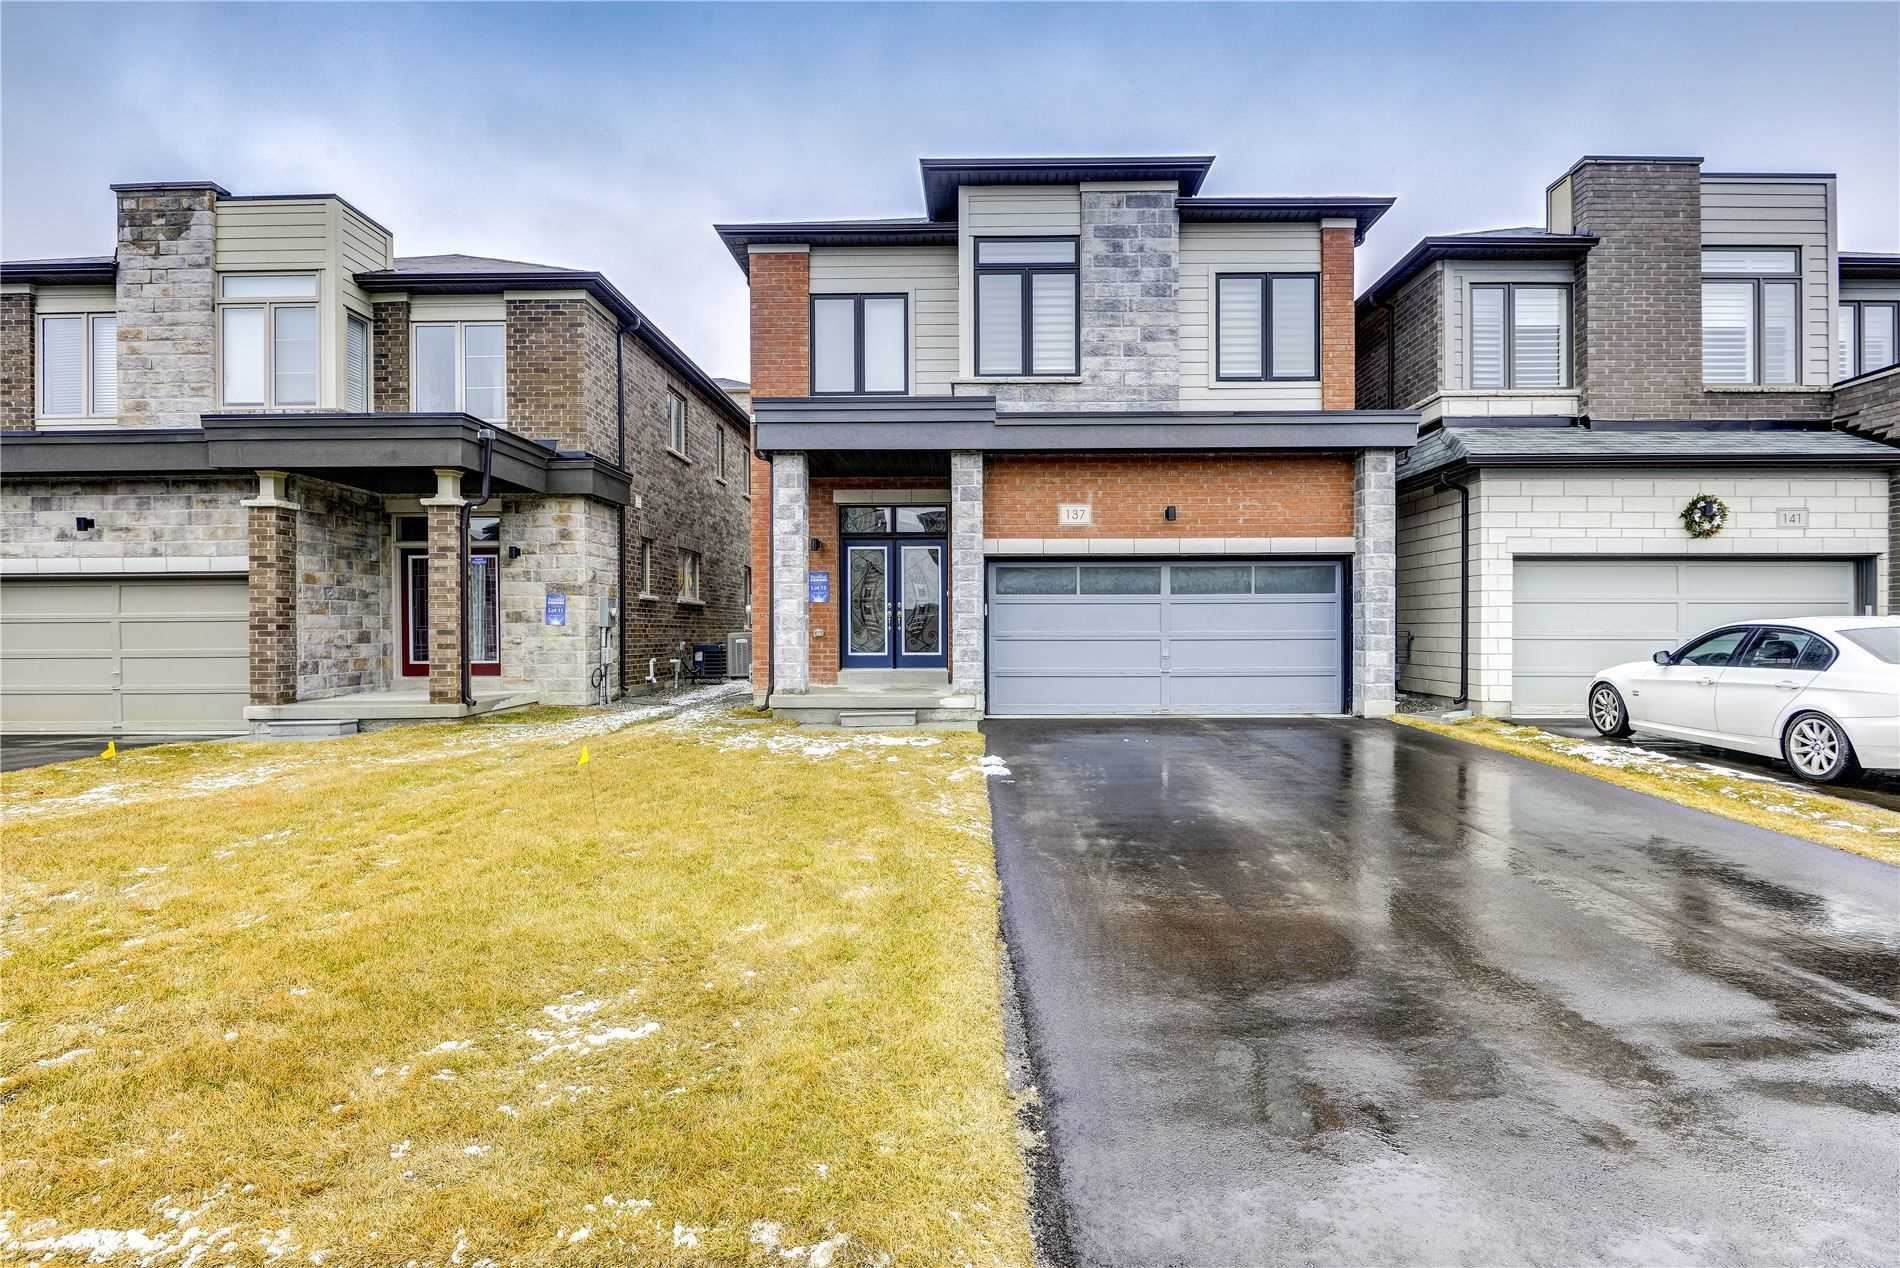 137 Vantage Loop Dr, Newmarket, ON L3X 1K8 - MLS#: N5201427